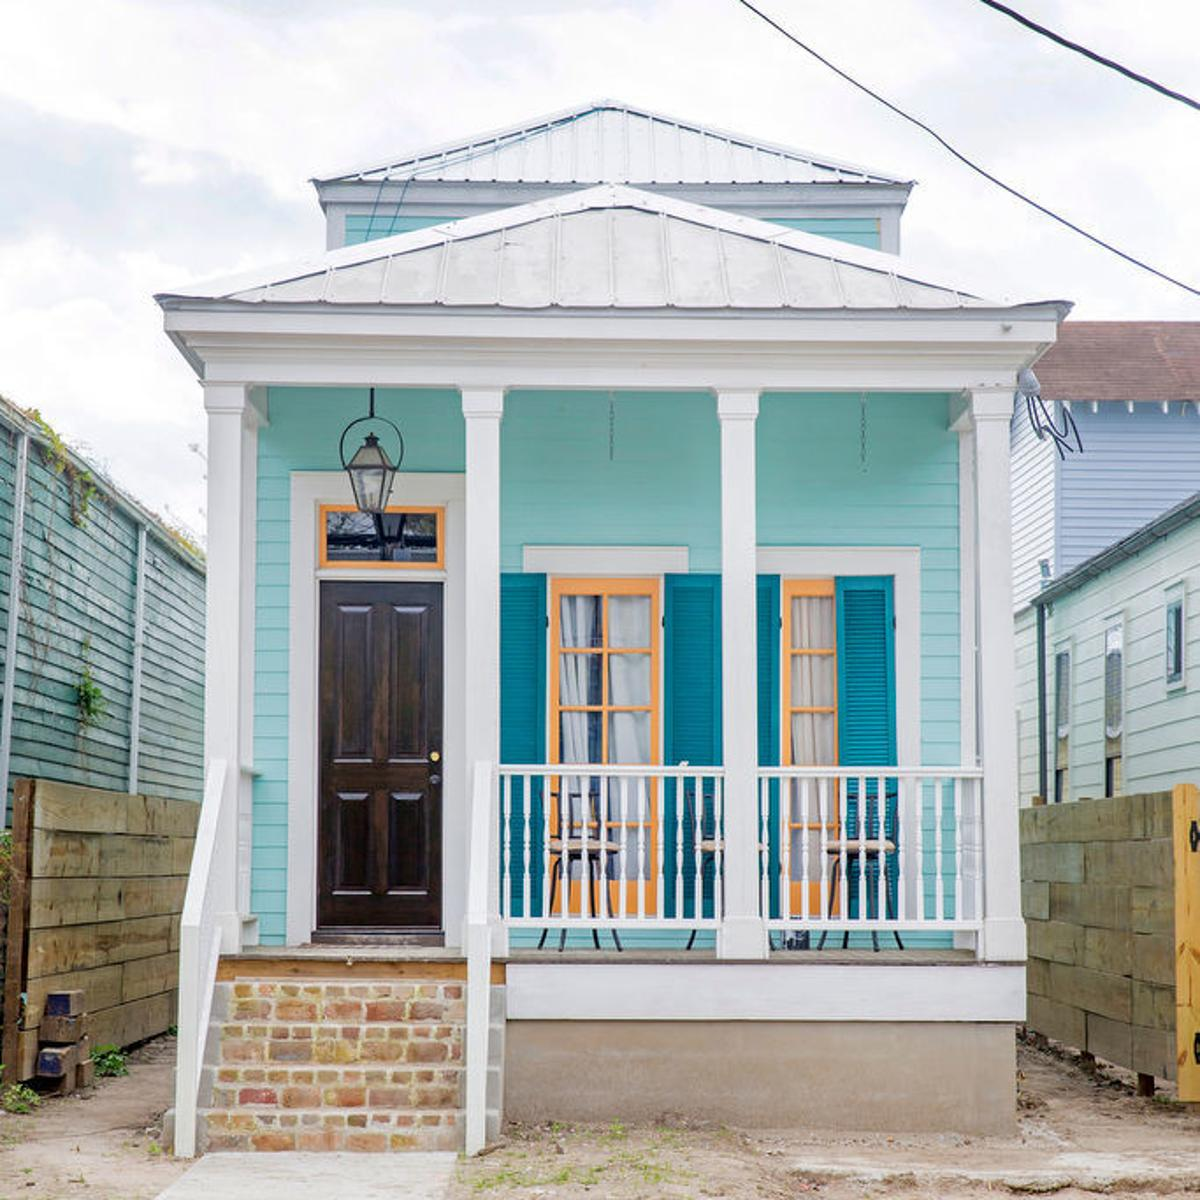 Small But Not Tiny Houses About 1 000 Square Feet Are Growing Trend Home Garden Nola Com